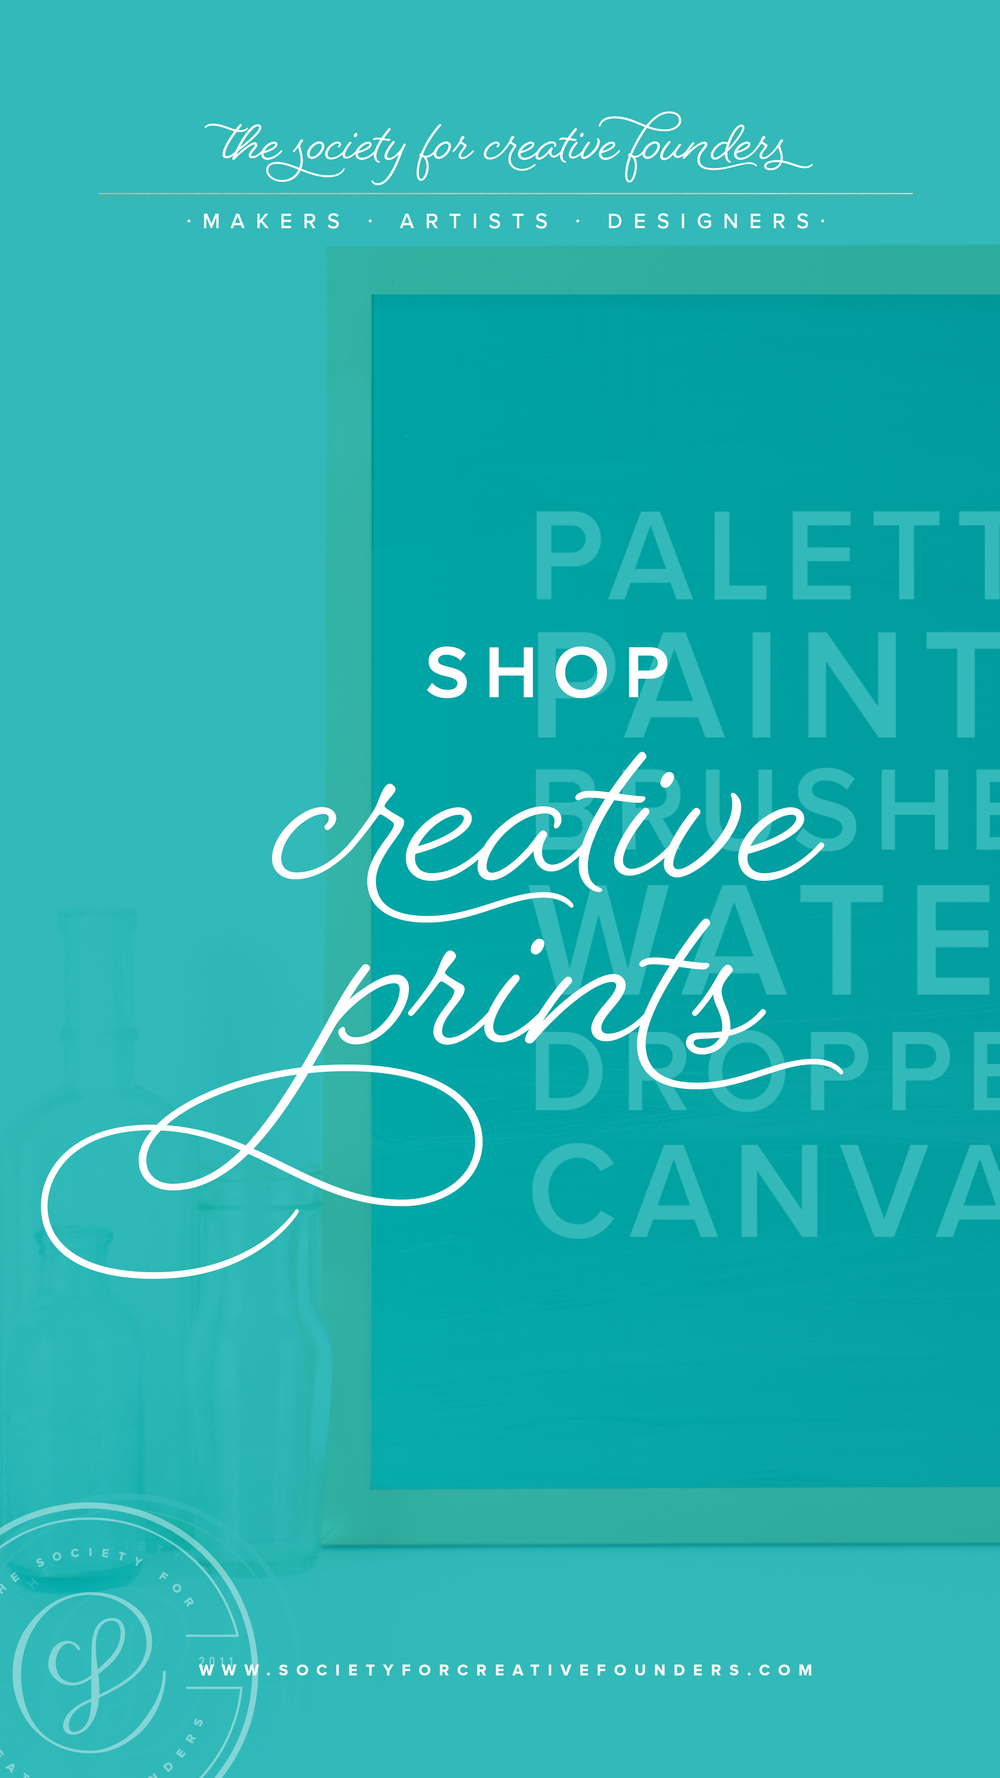 Creative Founders Shop - Prints